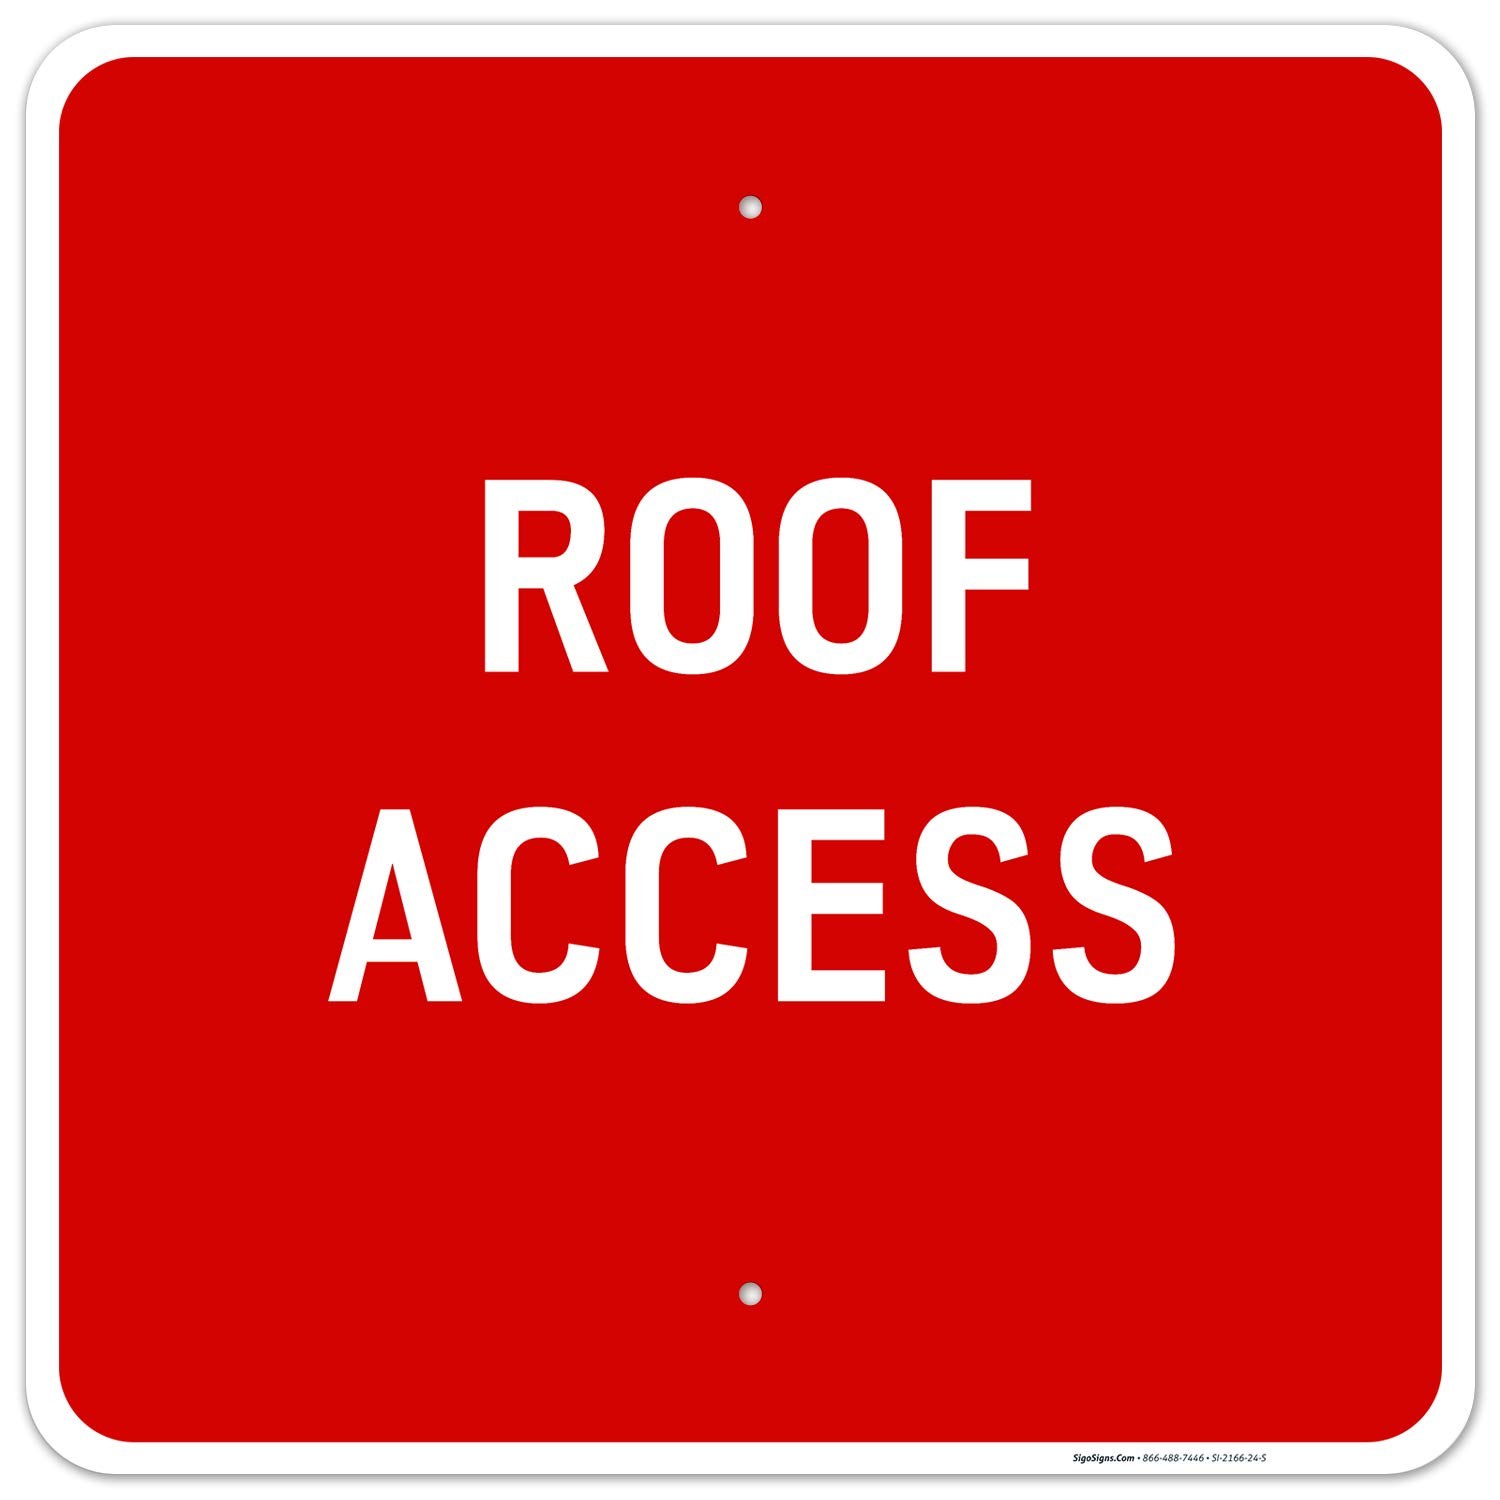 Roof Access Sign 24x24 Inches Rust Fade メーカー直売 Free Re Aluminum .063 正規品スーパーSALE×店内全品キャンペーン